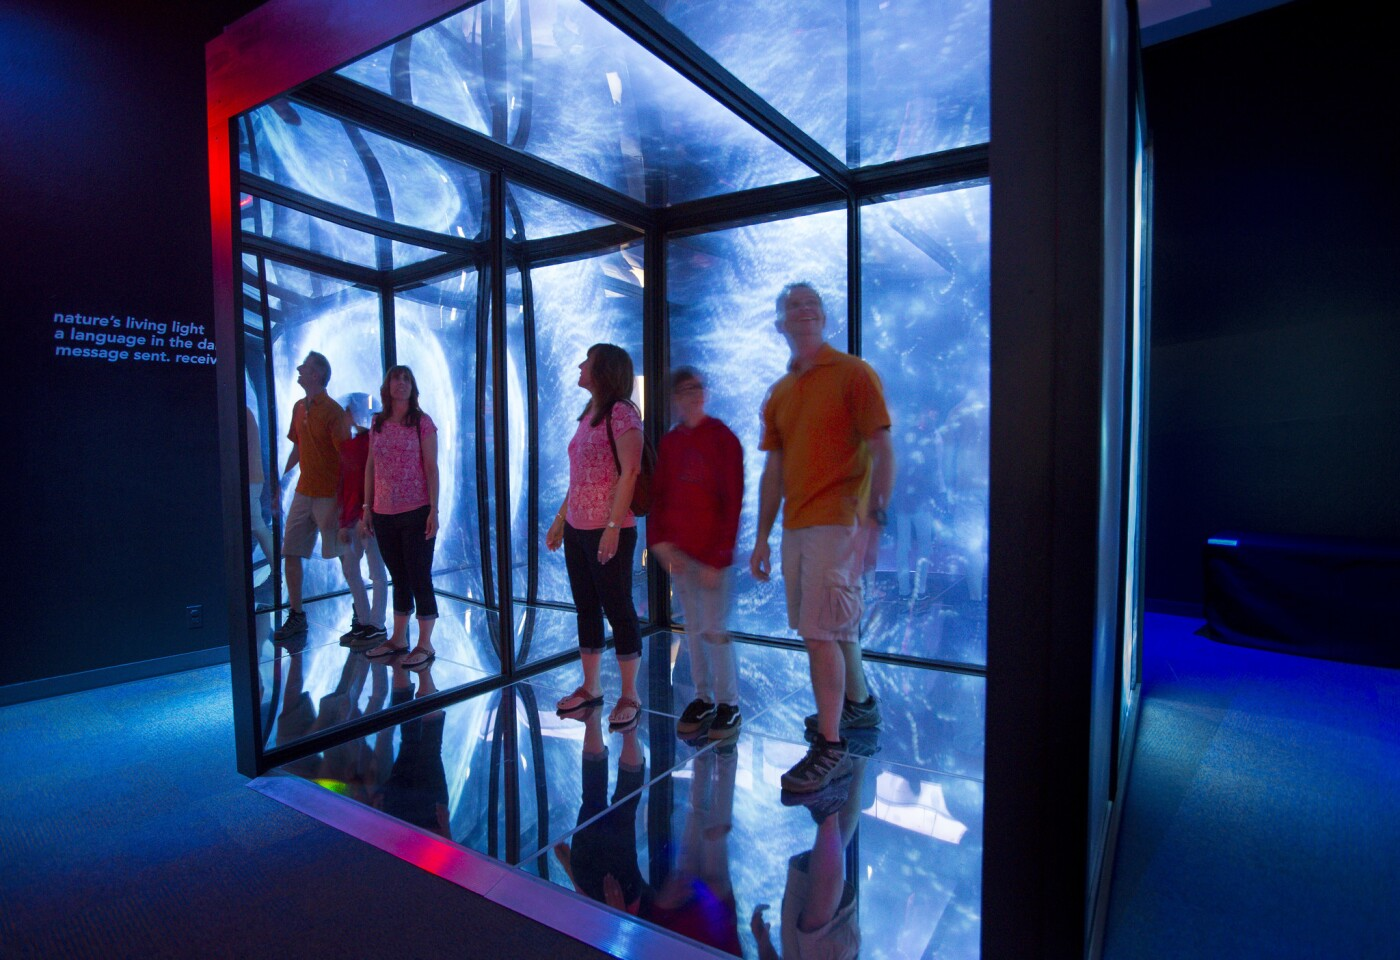 Visitors to the Birch Aquarium stand inside the Infinity Cube, a new exhibit featuring an 8-foot cube that surrounds guests in projected and reflected larger-than-life images of bioluminescence, which is light produced by living organisms in the marine environment.